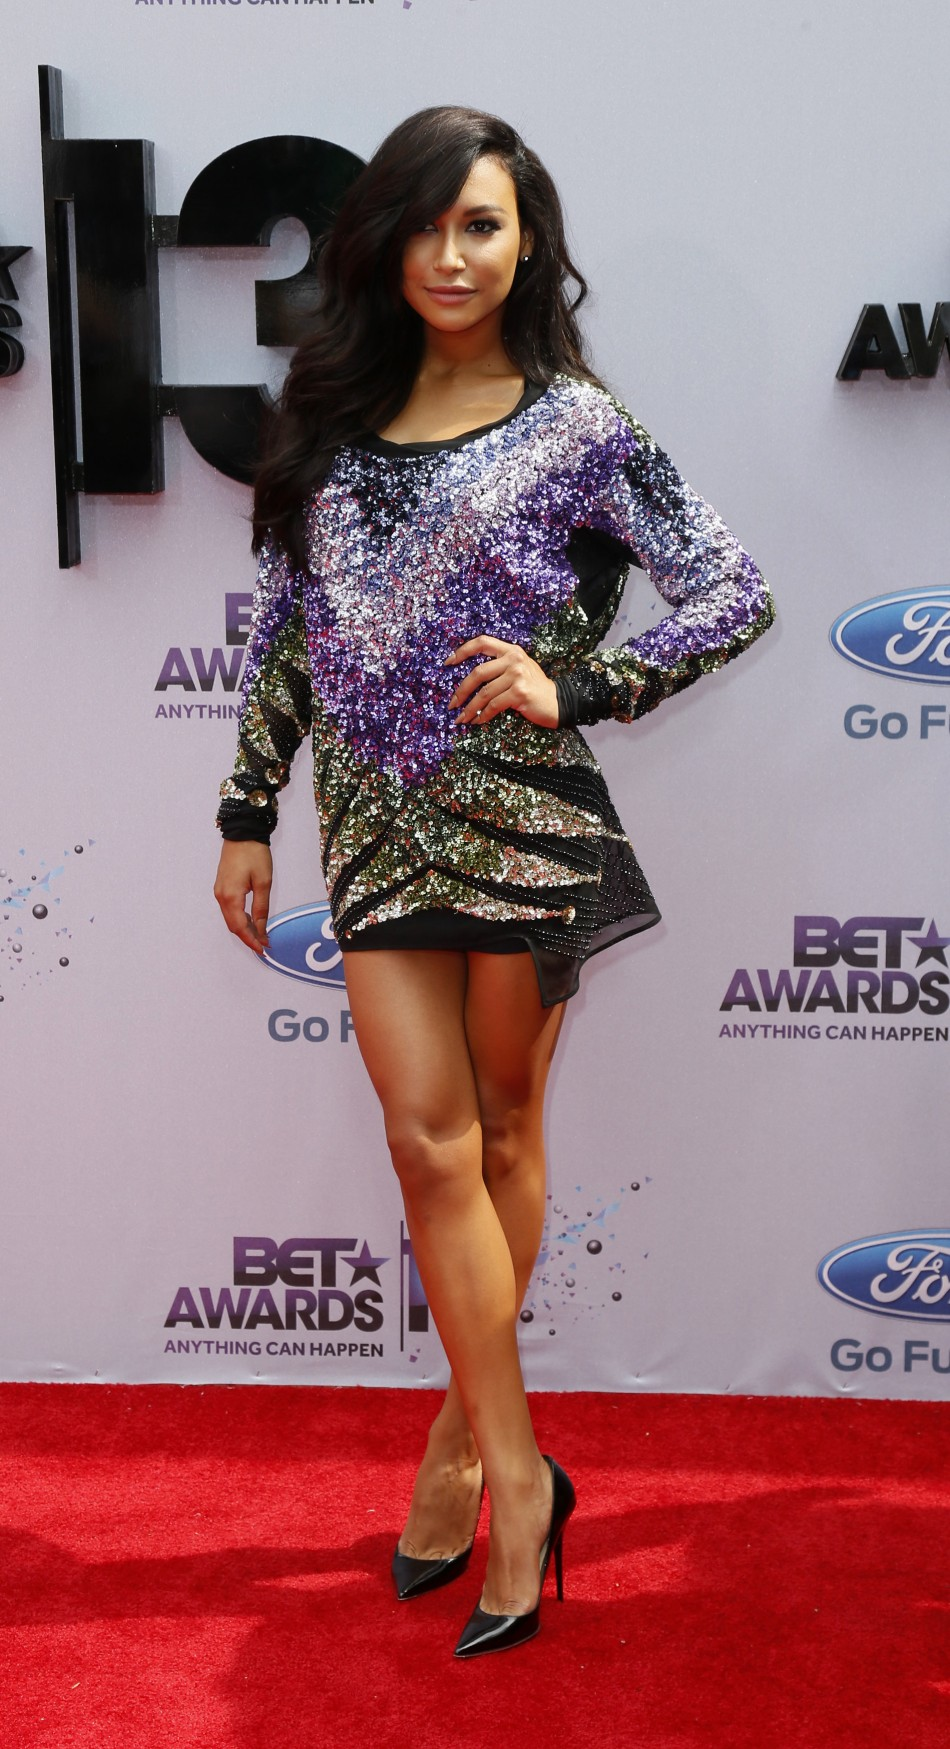 Actress Naya Rivera arrives at the 2013 BET Awards in Los Angeles, California June 30, 2013.